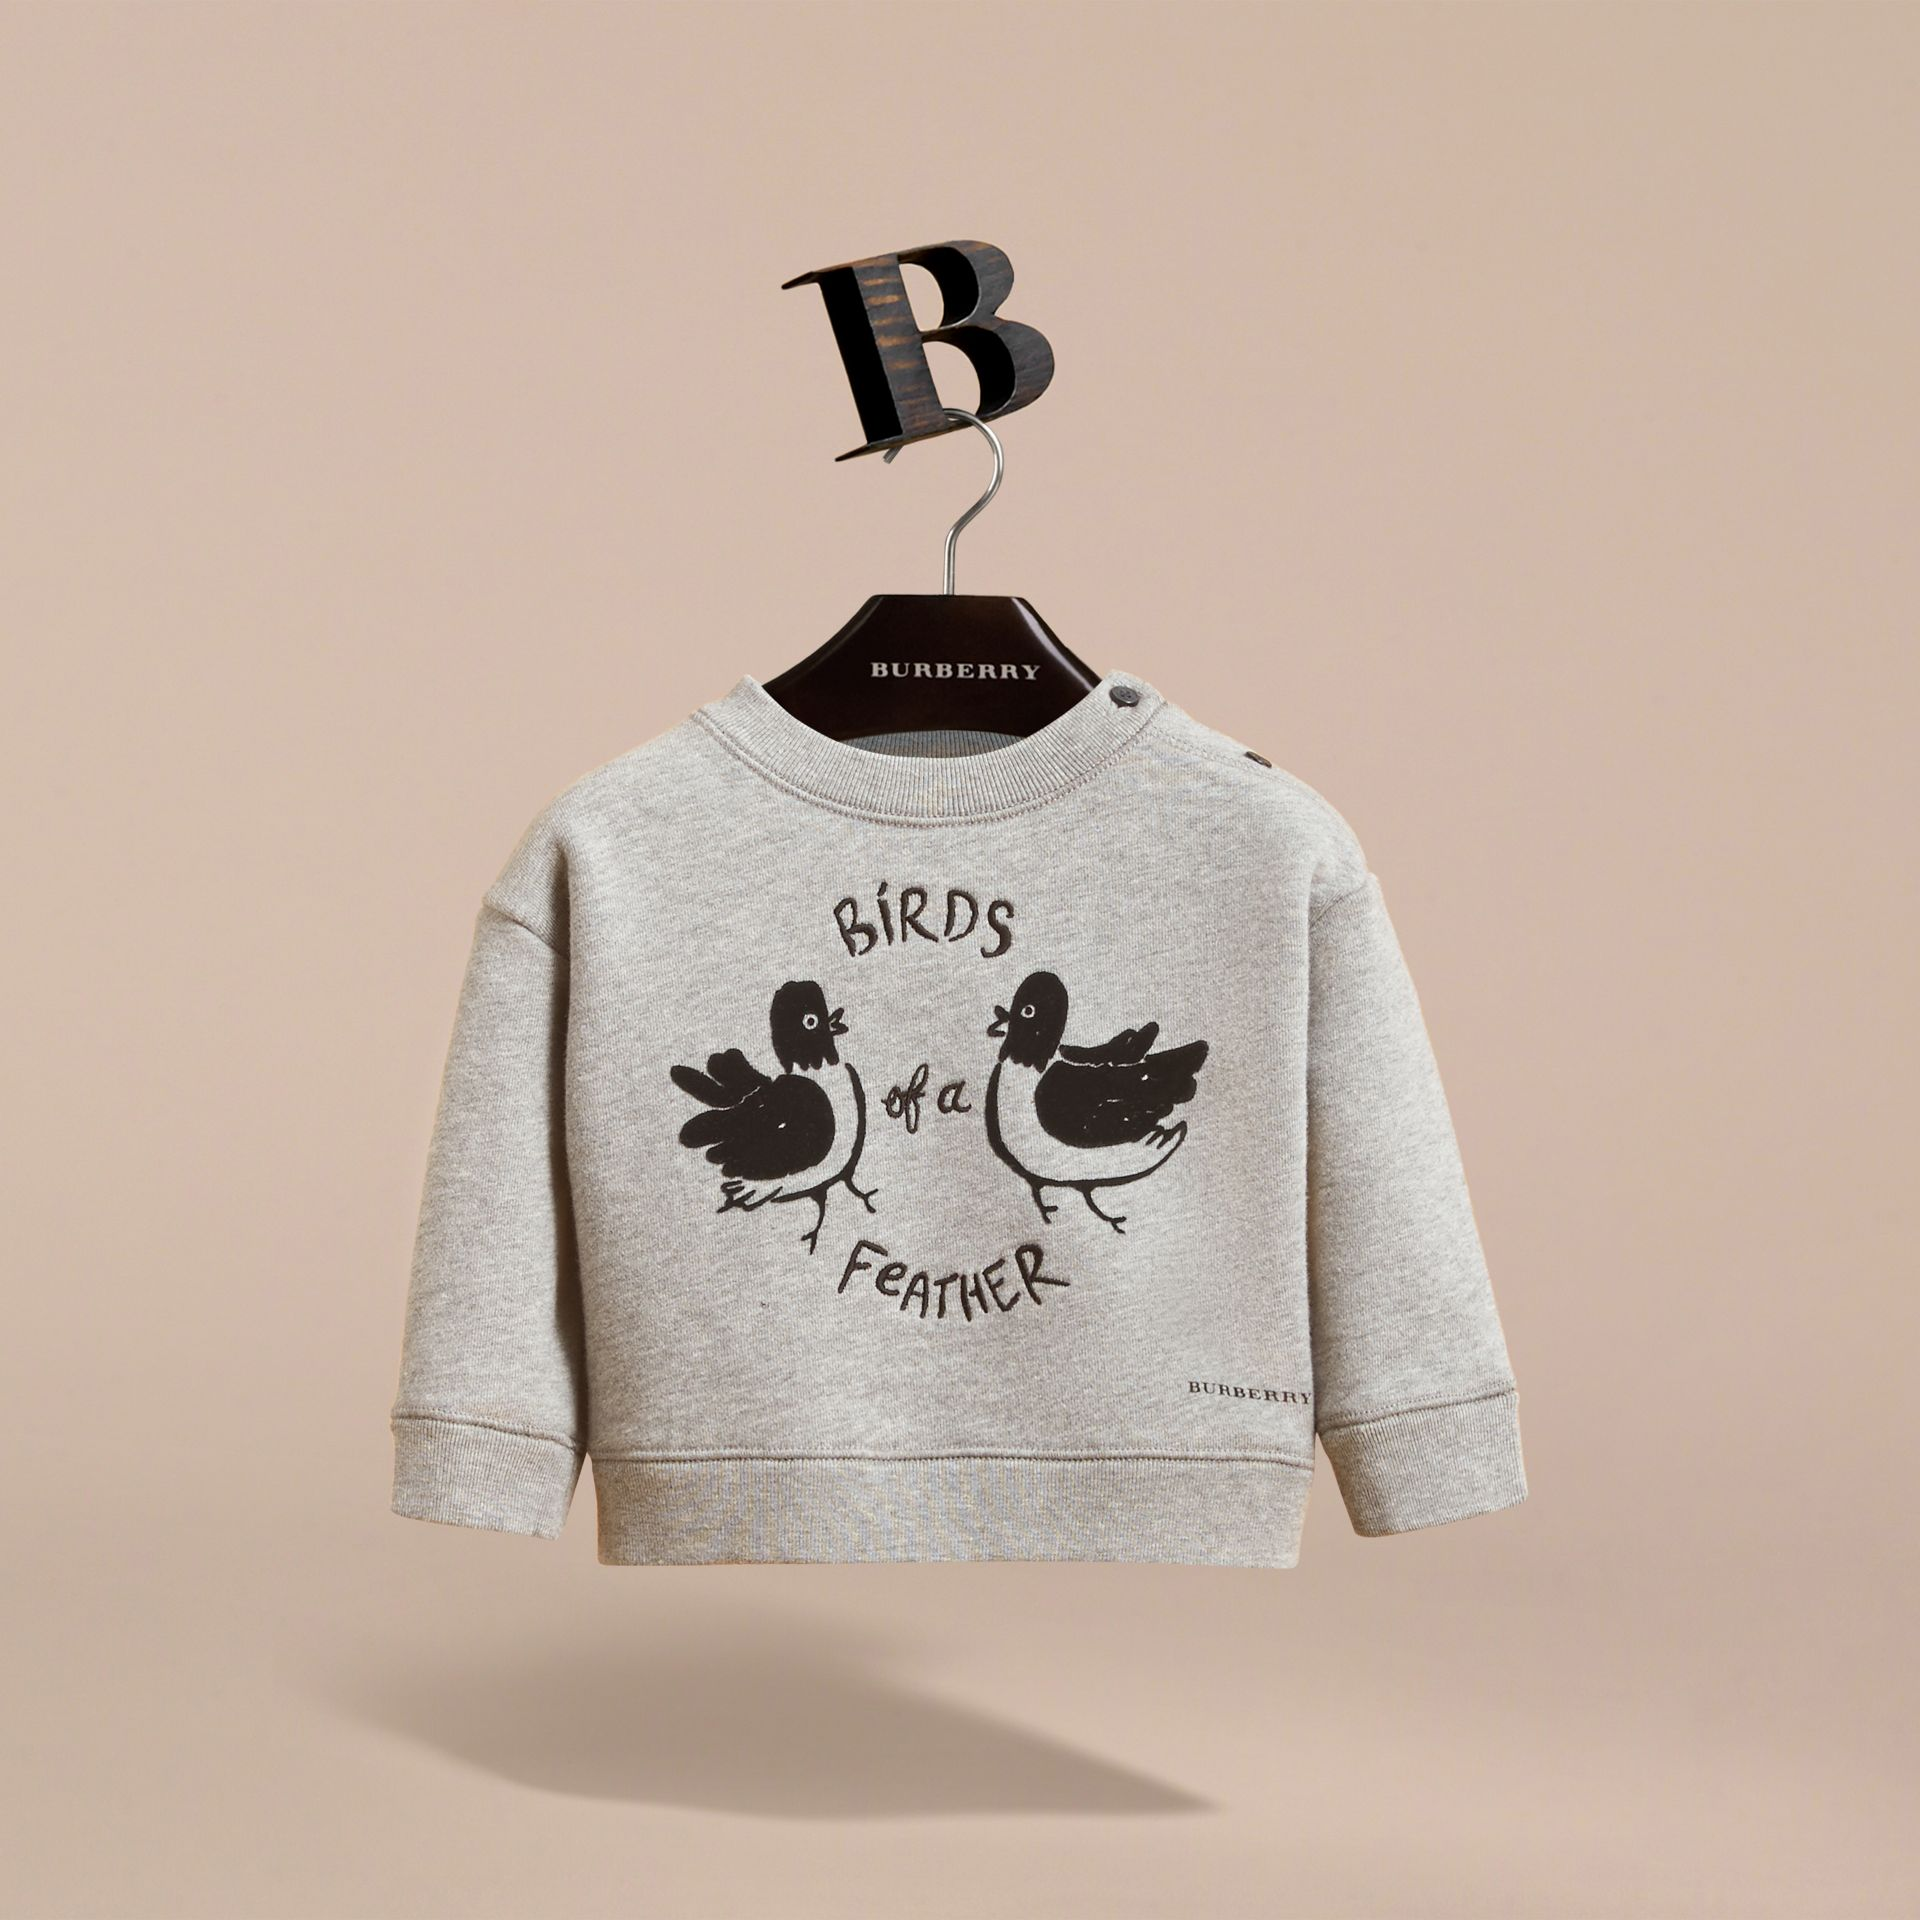 Birds of a Feather Motif Cotton Sweatshirt in Grey Melange | Burberry Canada - gallery image 3